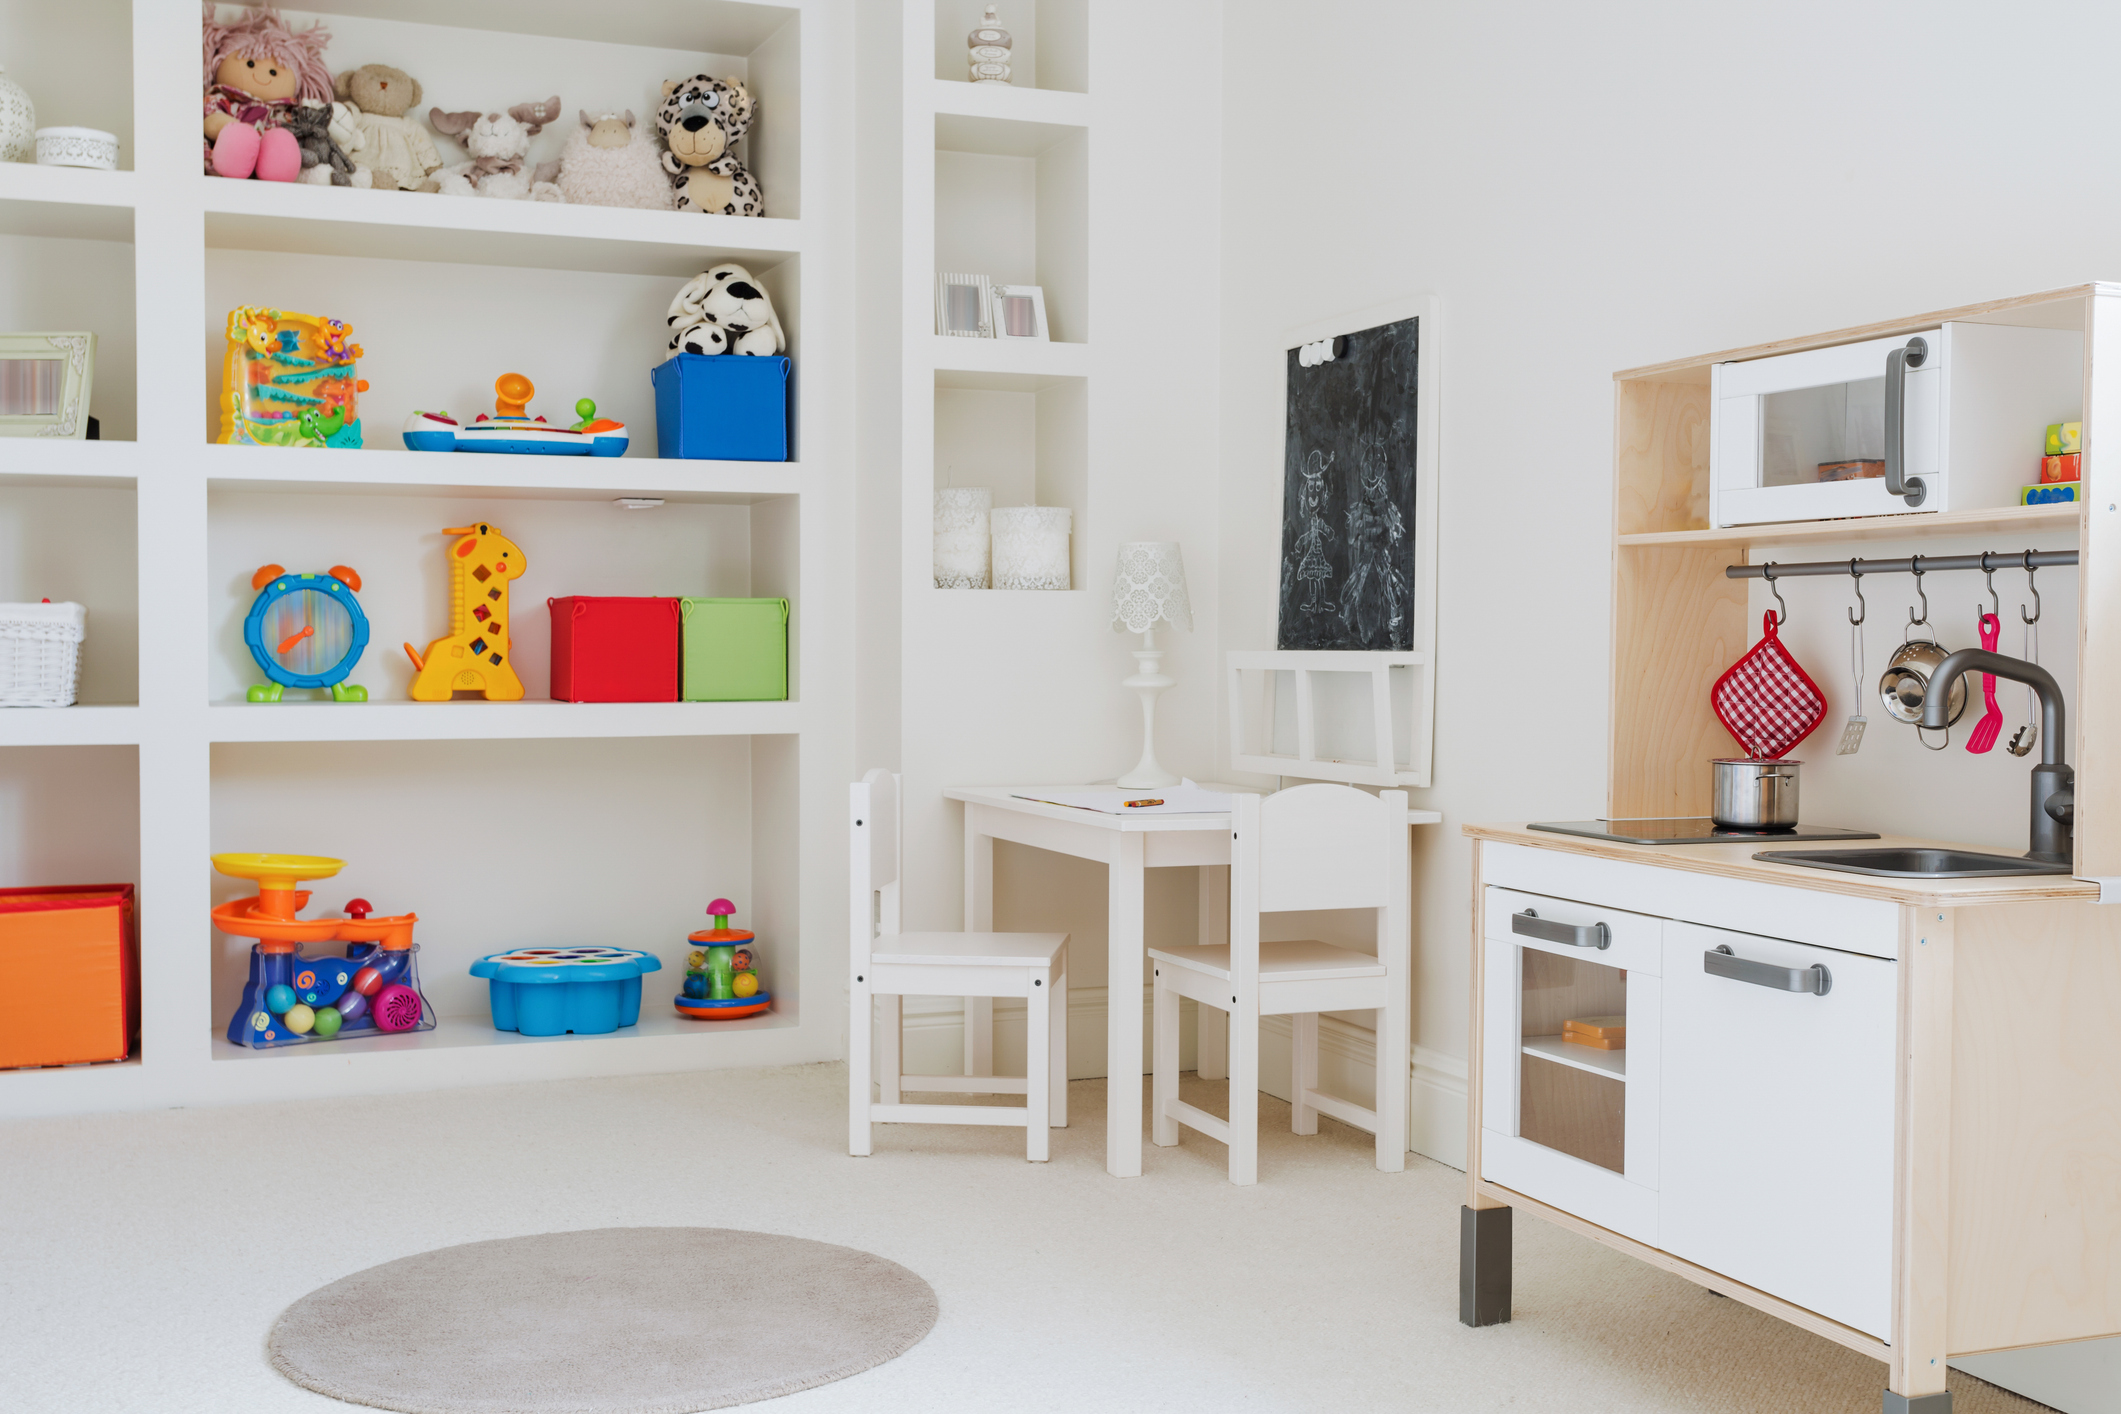 Play Area - Do the kids complain when it's time to clean up?Chances are they are just as overwhelmed by the toys as you are.With me by your side, we will design well-defined activity zones for your kids, which translates to less fights and more fun, combined with effortless clean up.